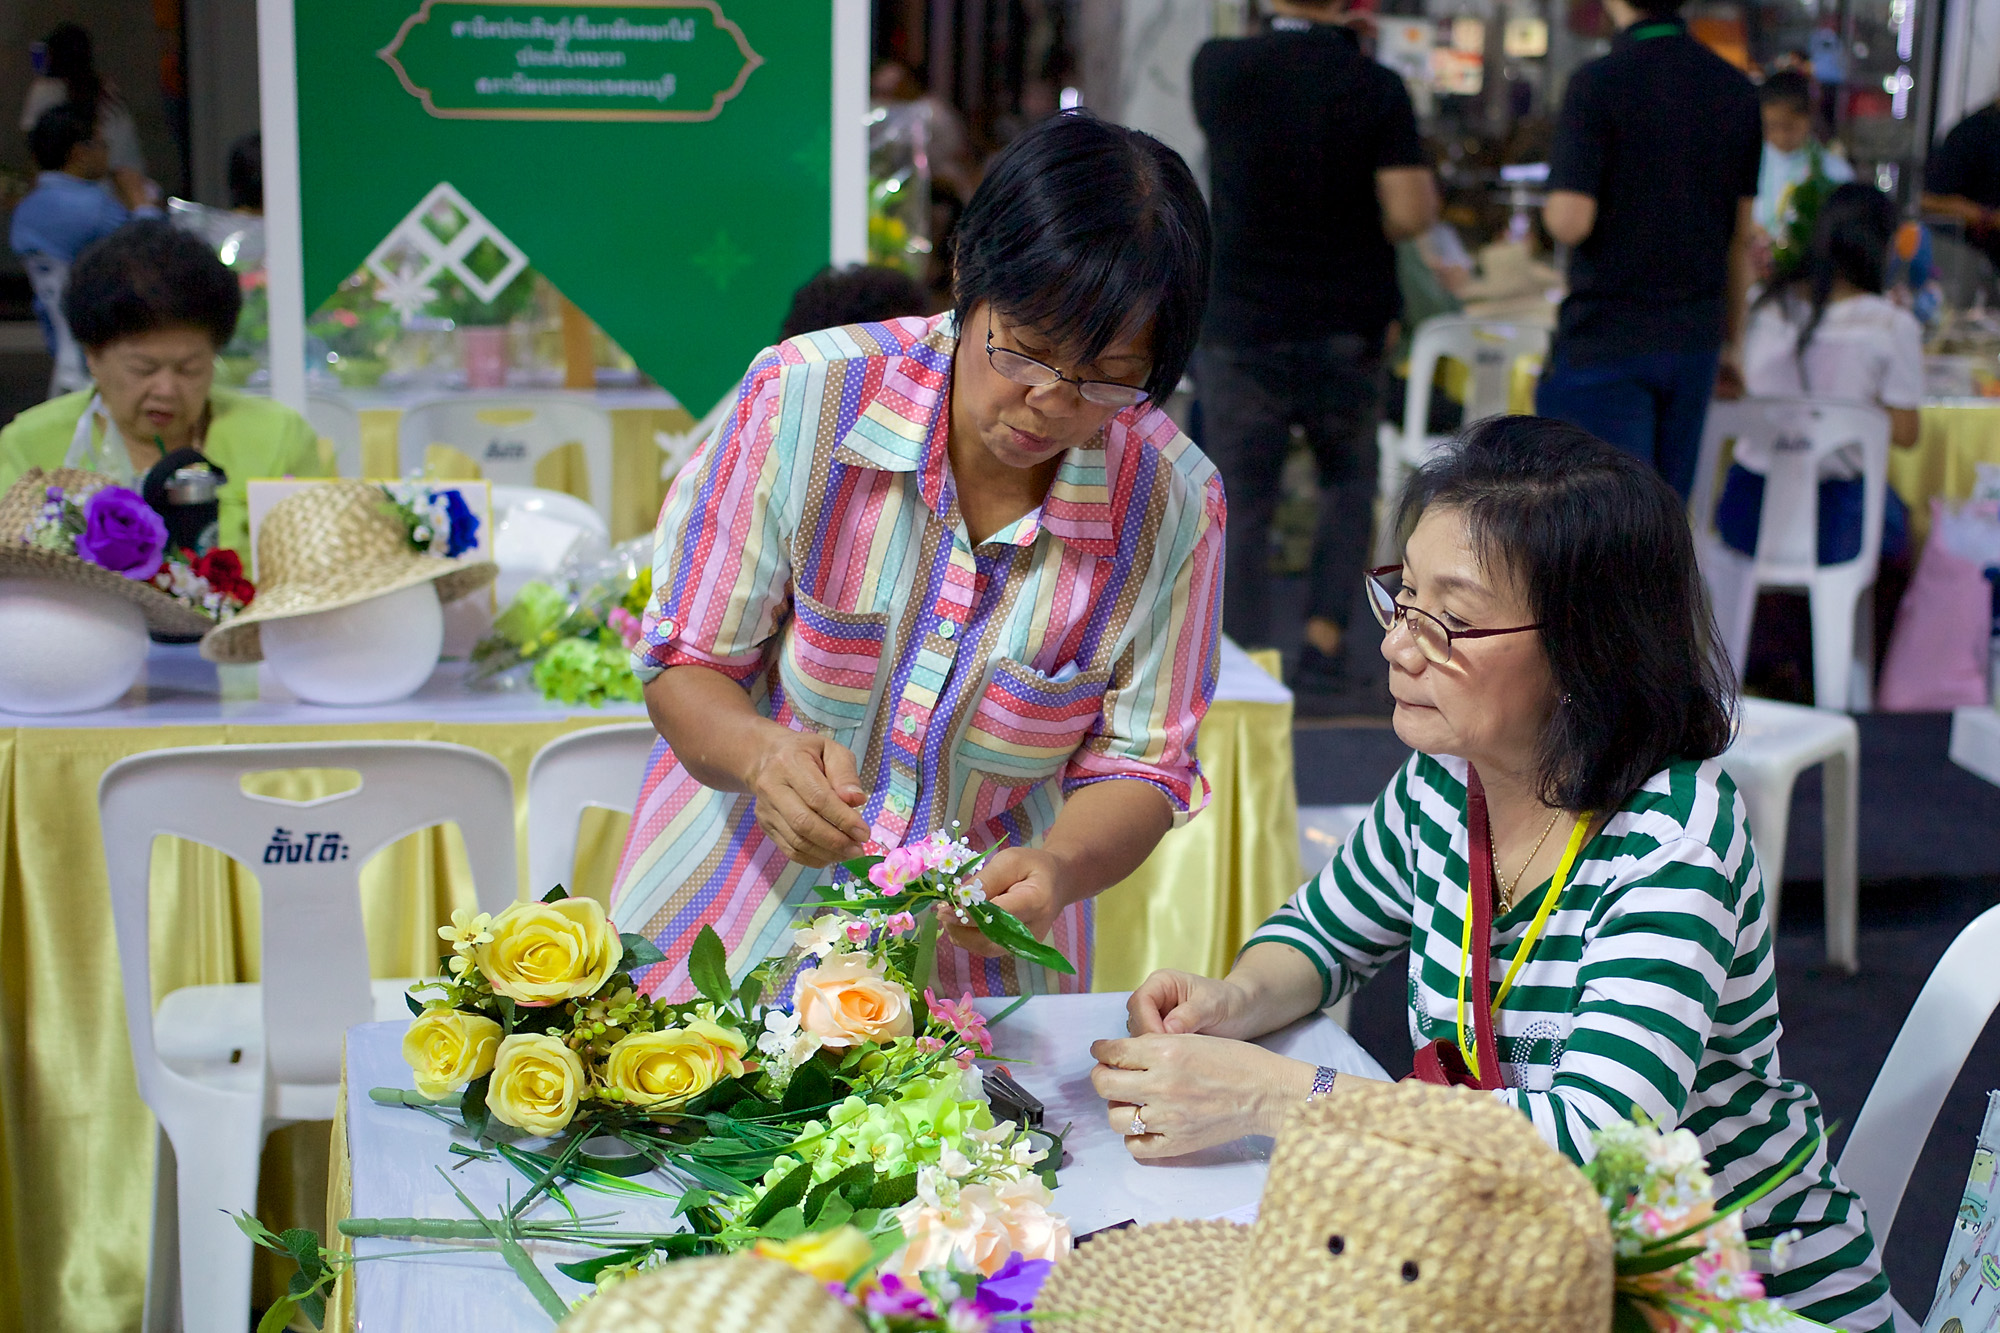 Two women arranging flowers with great concentration.